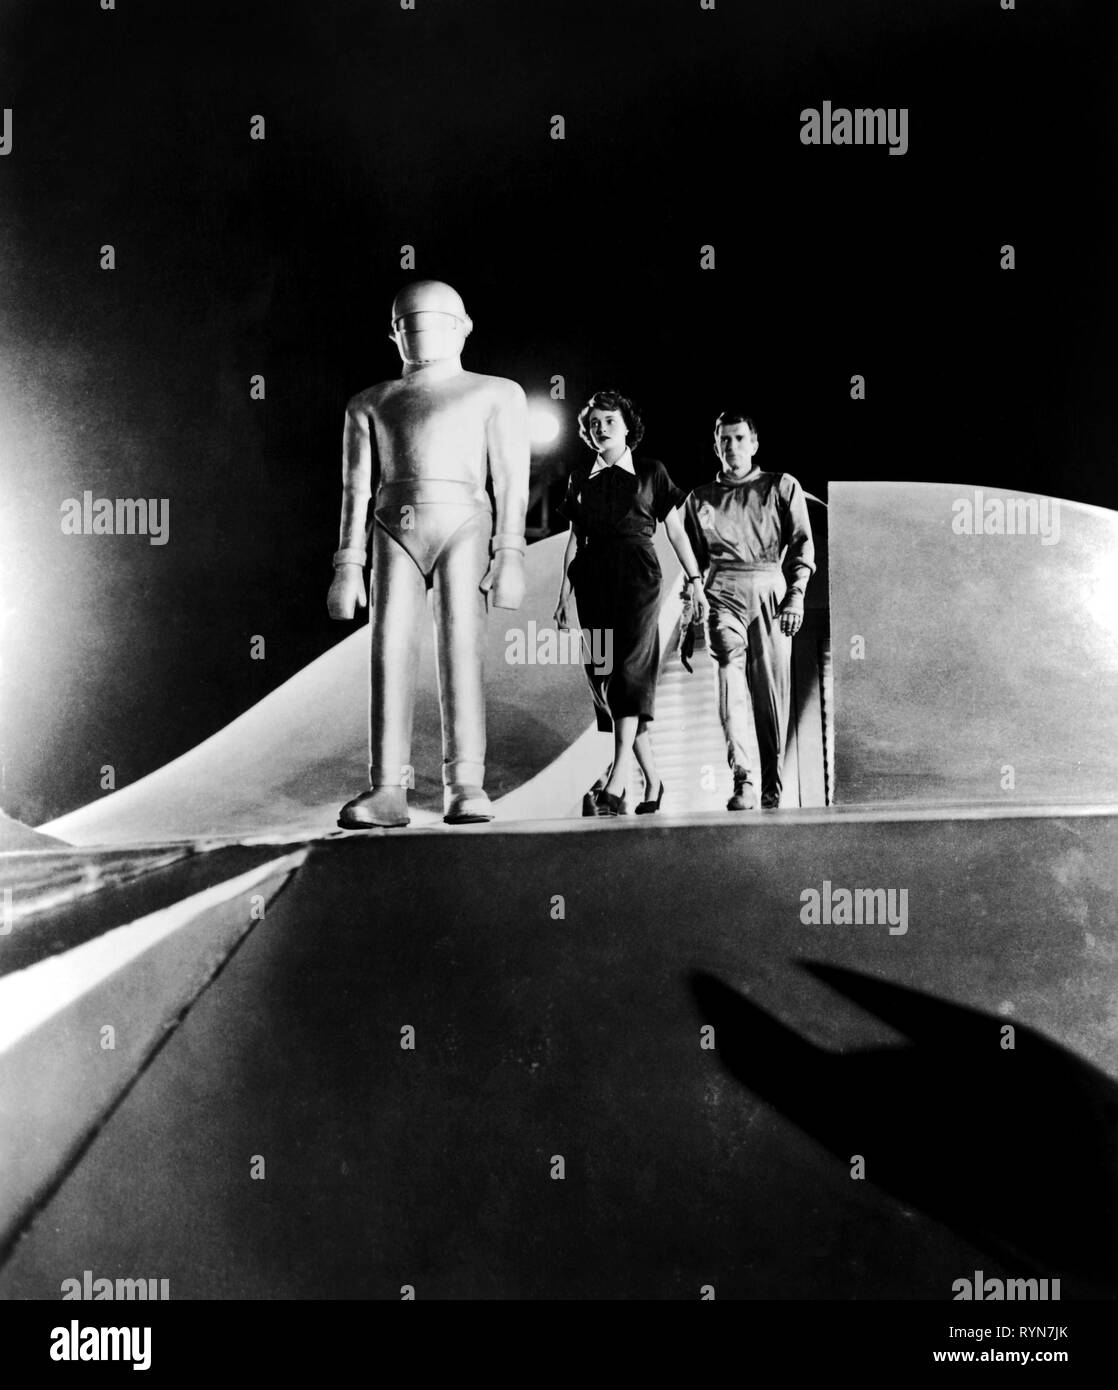 NEAL,RENNIE, THE DAY THE EARTH STOOD STILL, 1951 - Stock Image